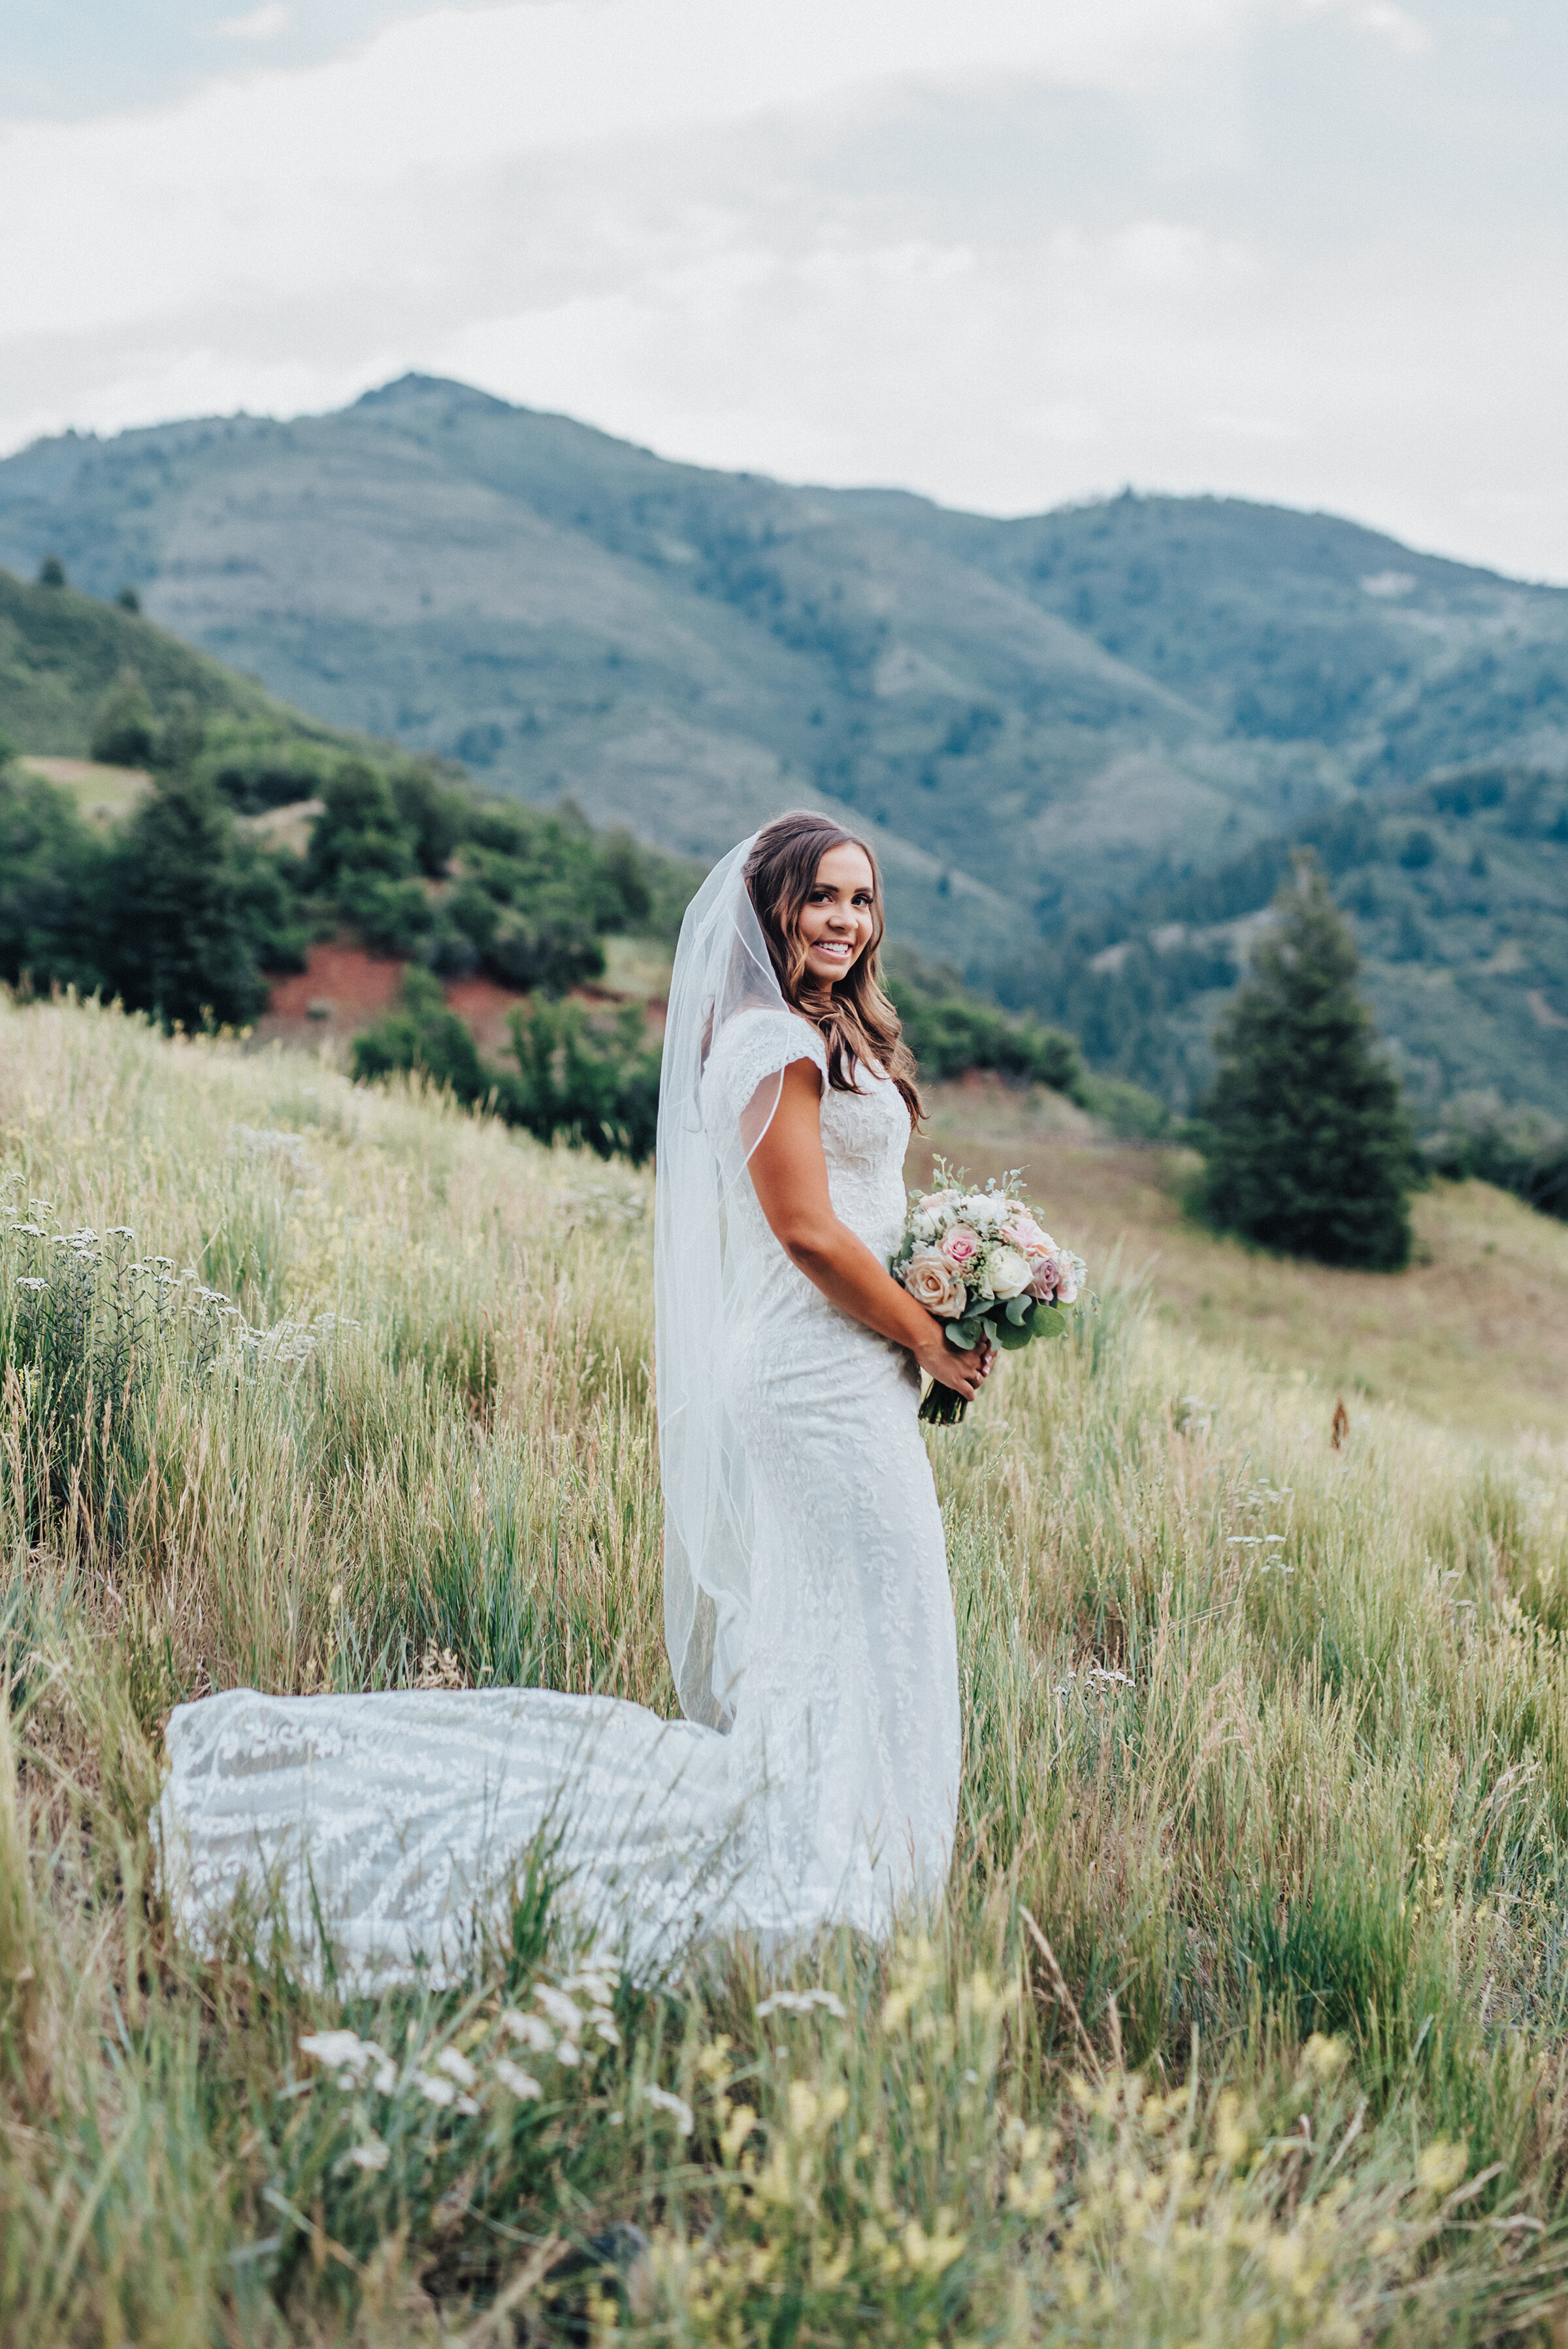 A gorgeous bride holds her bouquet in a traditional position while smiling and looking into the camera on a grassy hillside in American Fork canyon. Tibble Fork reservoir overlook grassy hillside evergreen trees woodsy scenery bridal shot light pink bouquet mountains in the background long veil #bridals #younglove #tibbleforkreservoir #utahwedding #americanforkcanyon #coupleshoot #formals #weddingphotography #couplesgoals #couplephotography #weddingphotographer #pinkbouquet #bride #rollinghills